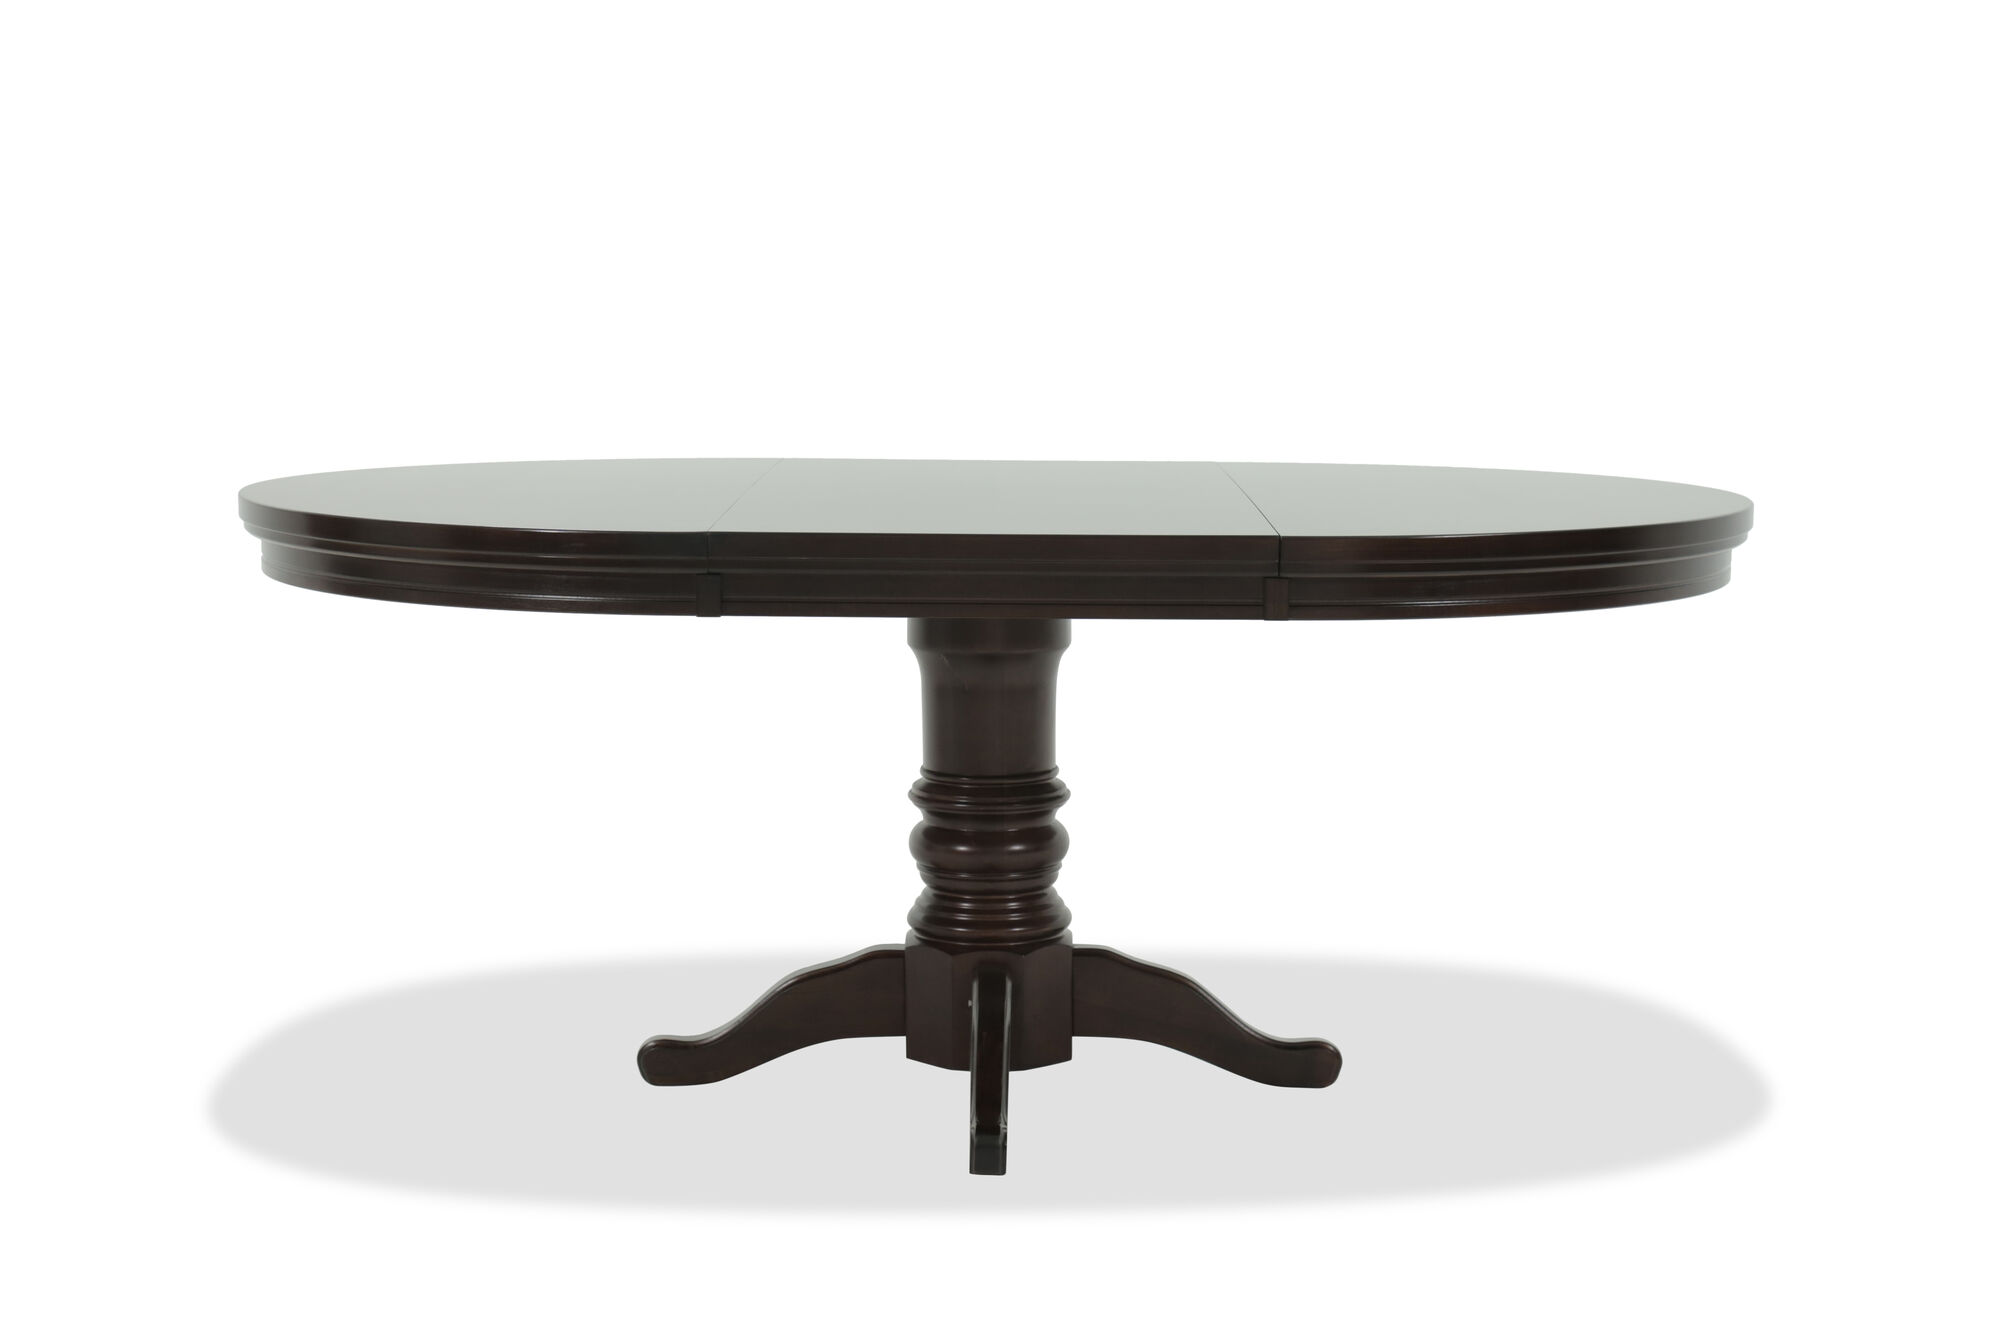 48 To 72 Oval Pedestal Dining Table